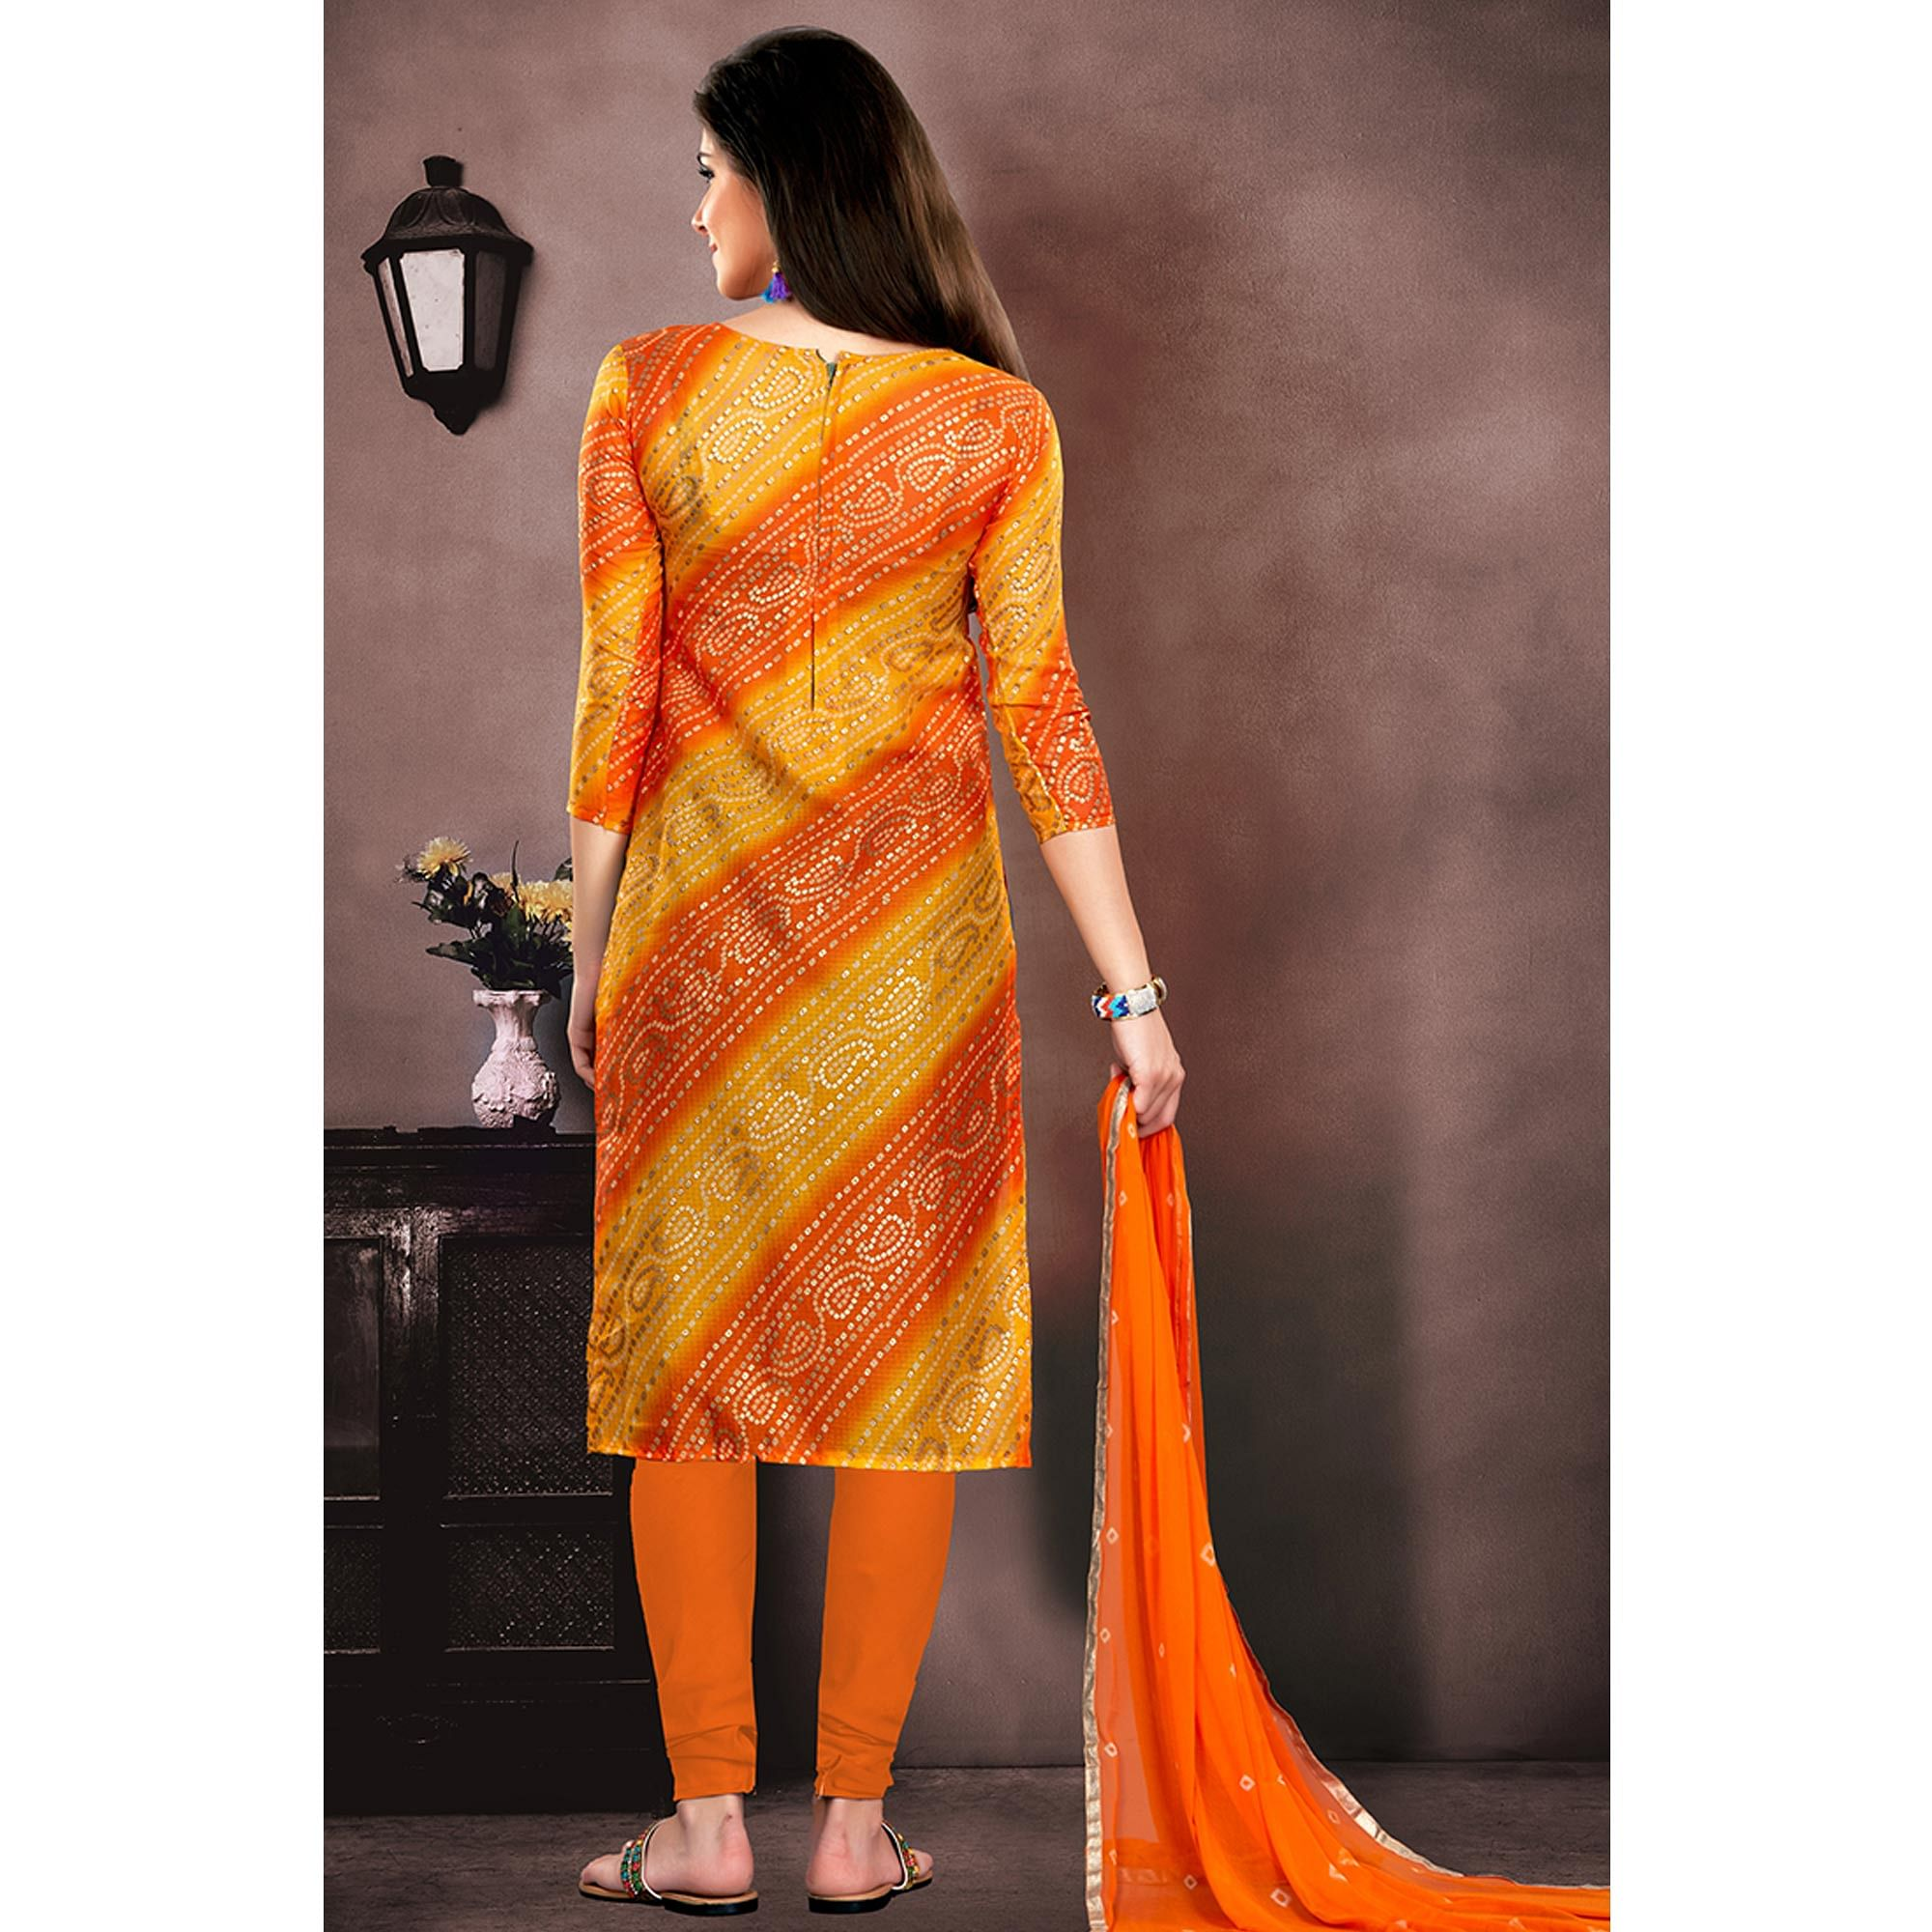 Classy Orange - Yellow Colored Party Wear Embroidered Modal Chanderi Dress Material